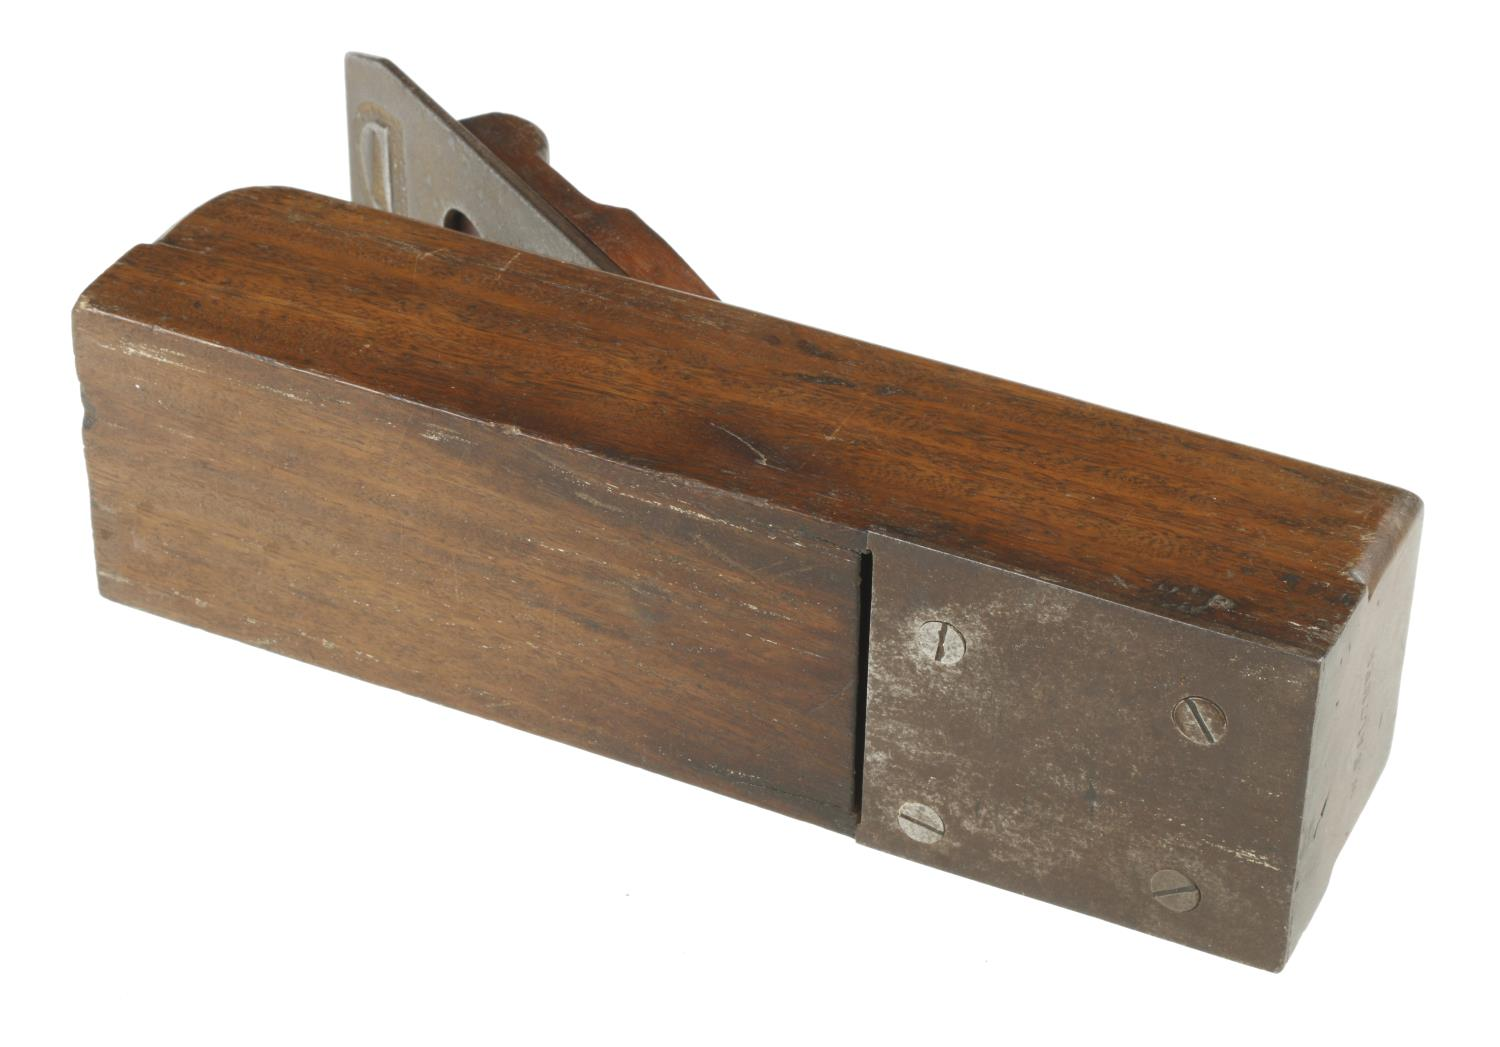 """A steel soled rosewood block plane 8 1/2"""" x 2 1/2"""" G - Image 3 of 3"""